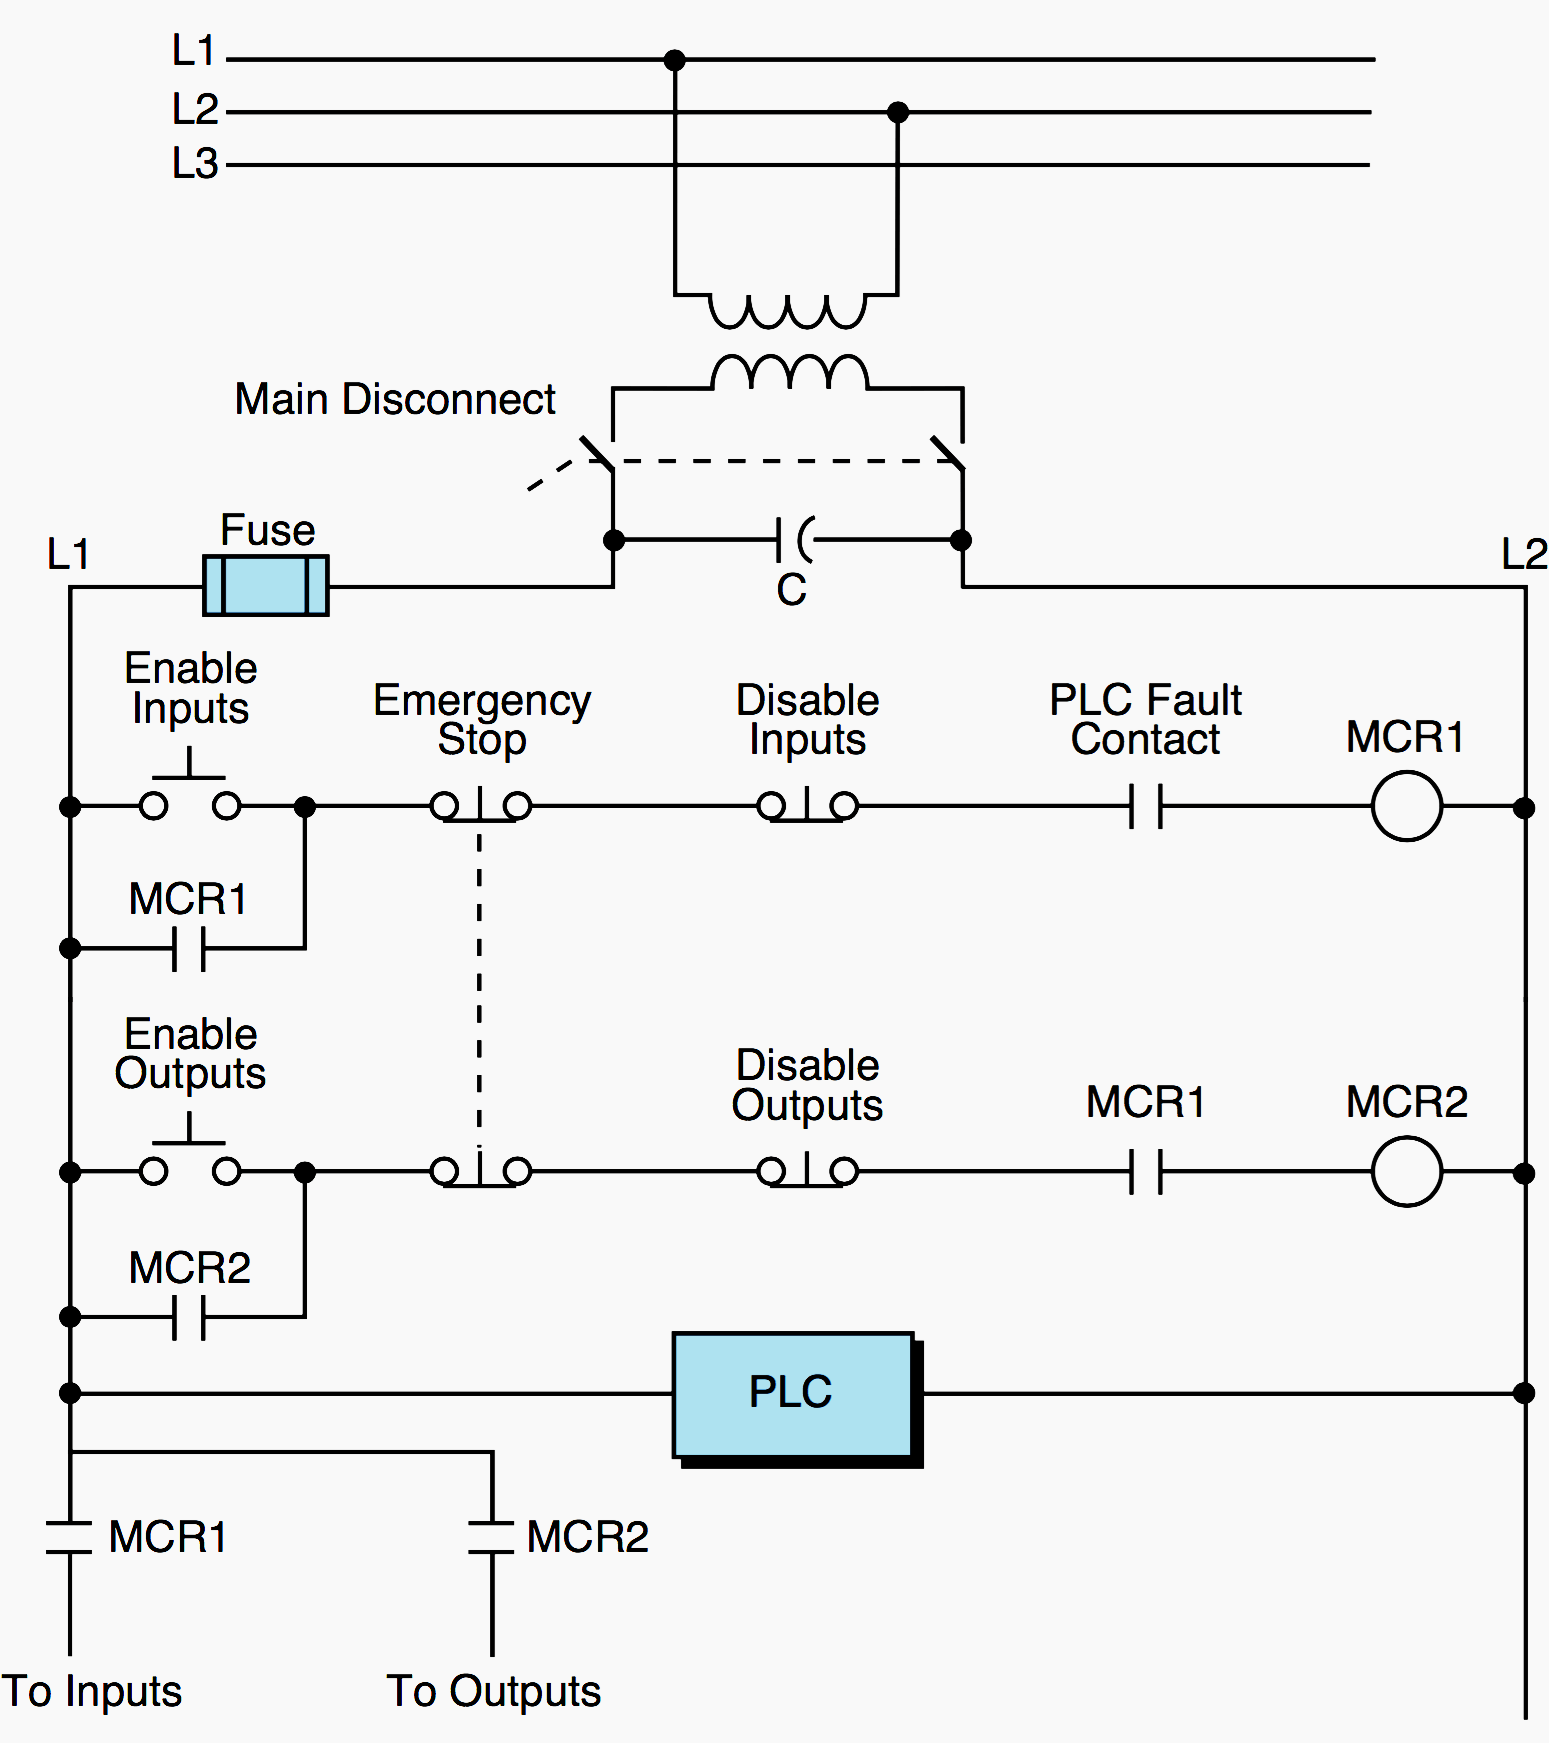 hight resolution of circuit that enables disables i o power through mcrs and plc fault contact detection